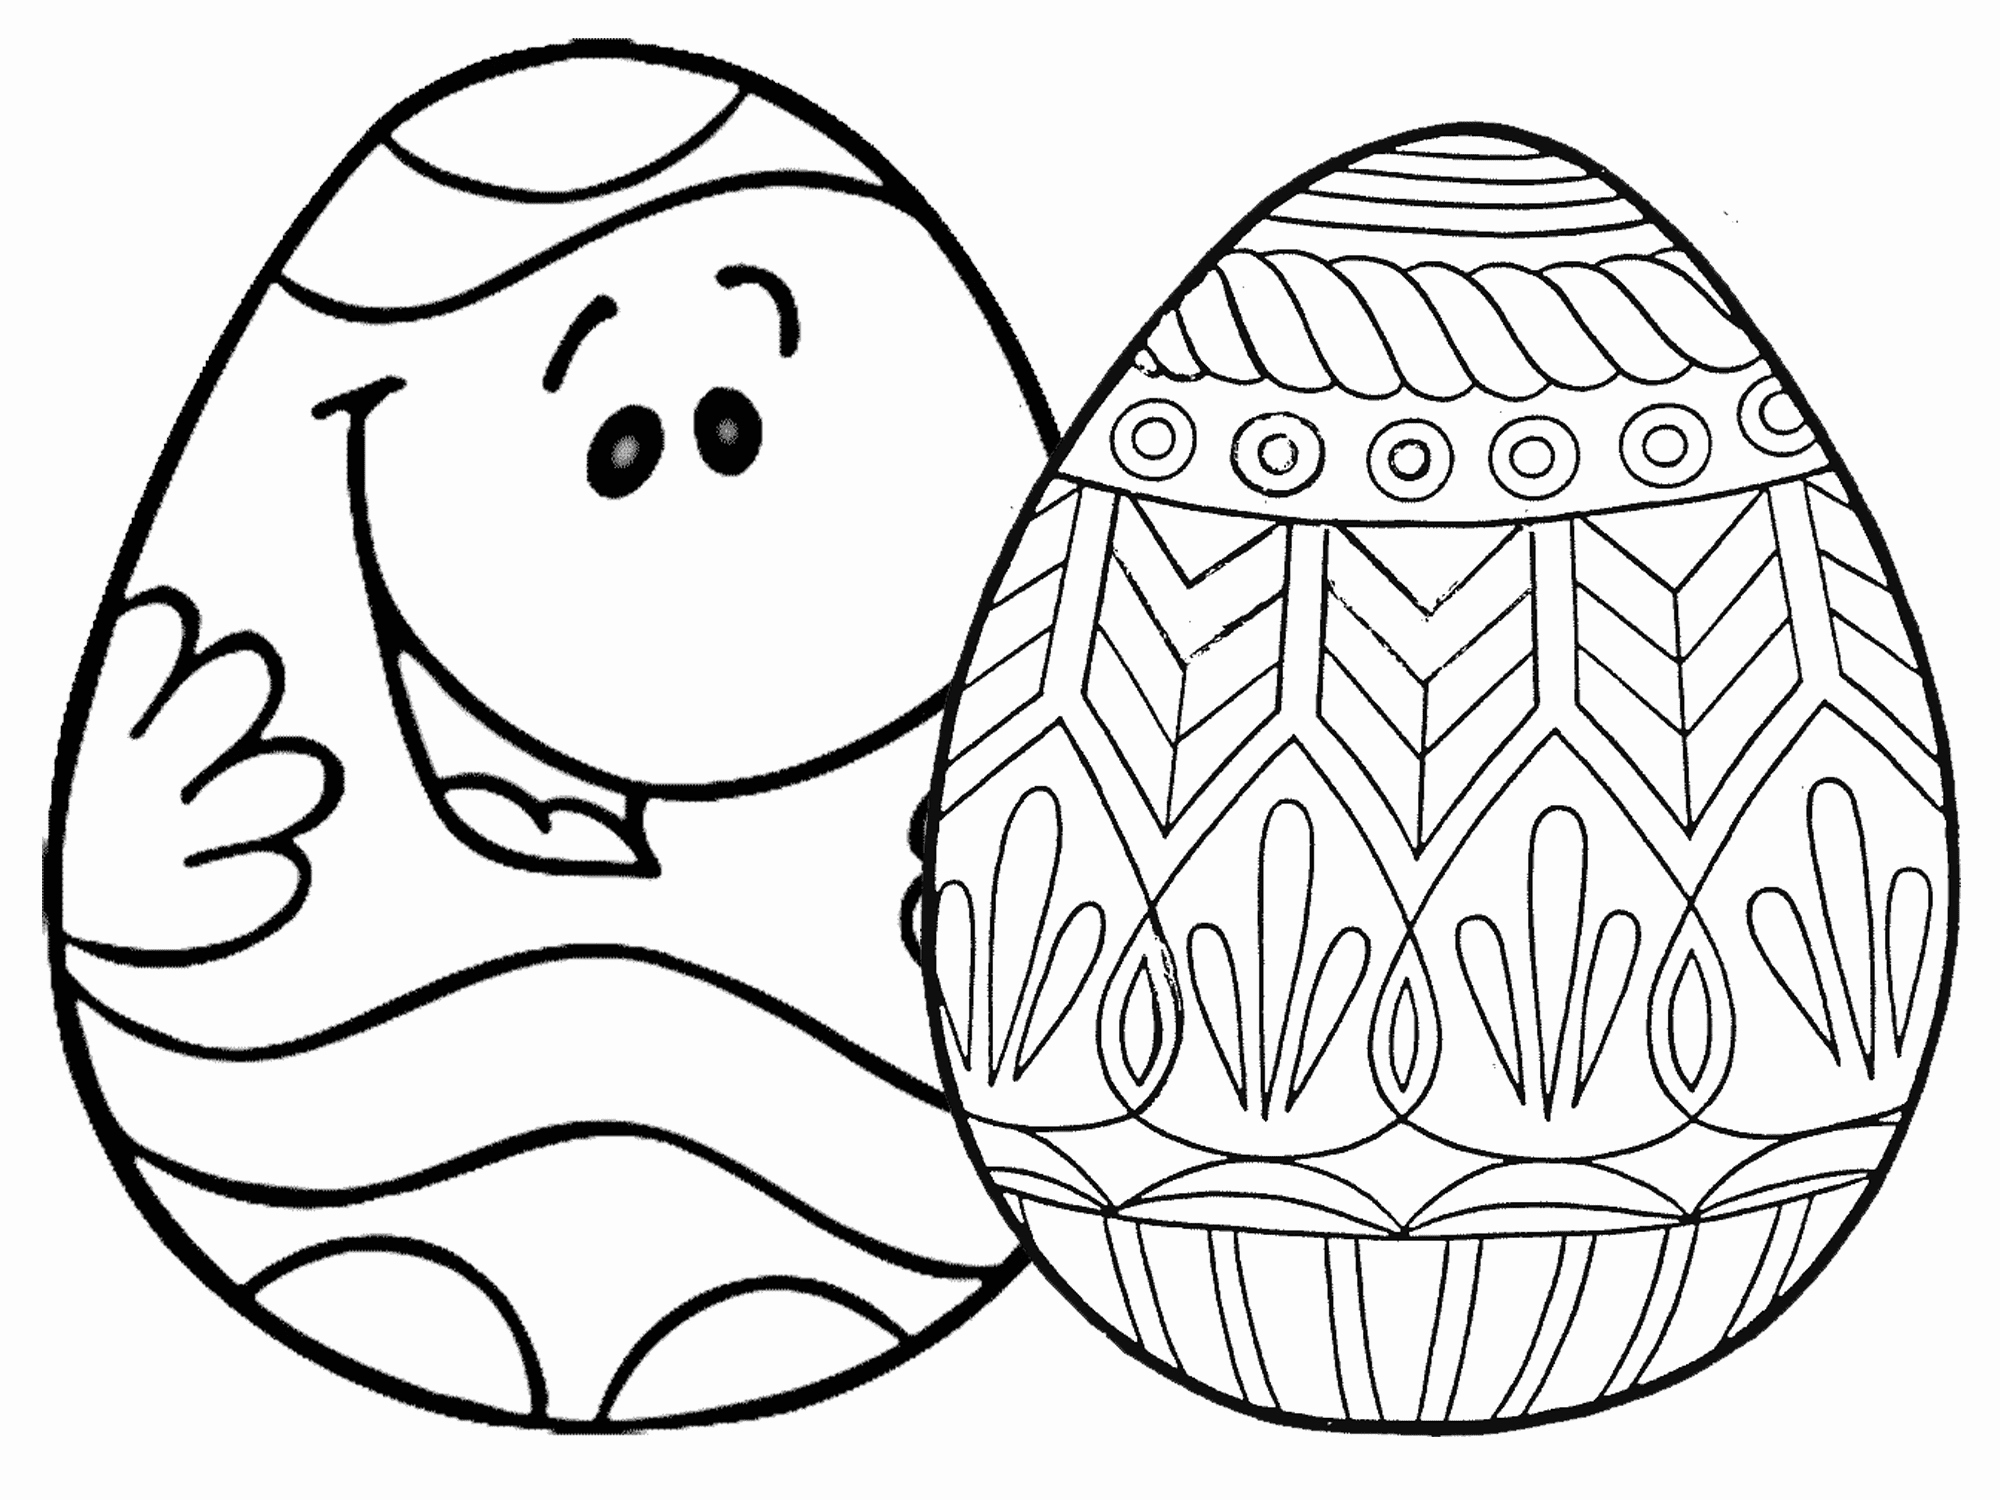 2000x1500 Free Printable Easter Egg Coloring Pages Free Easter Egg